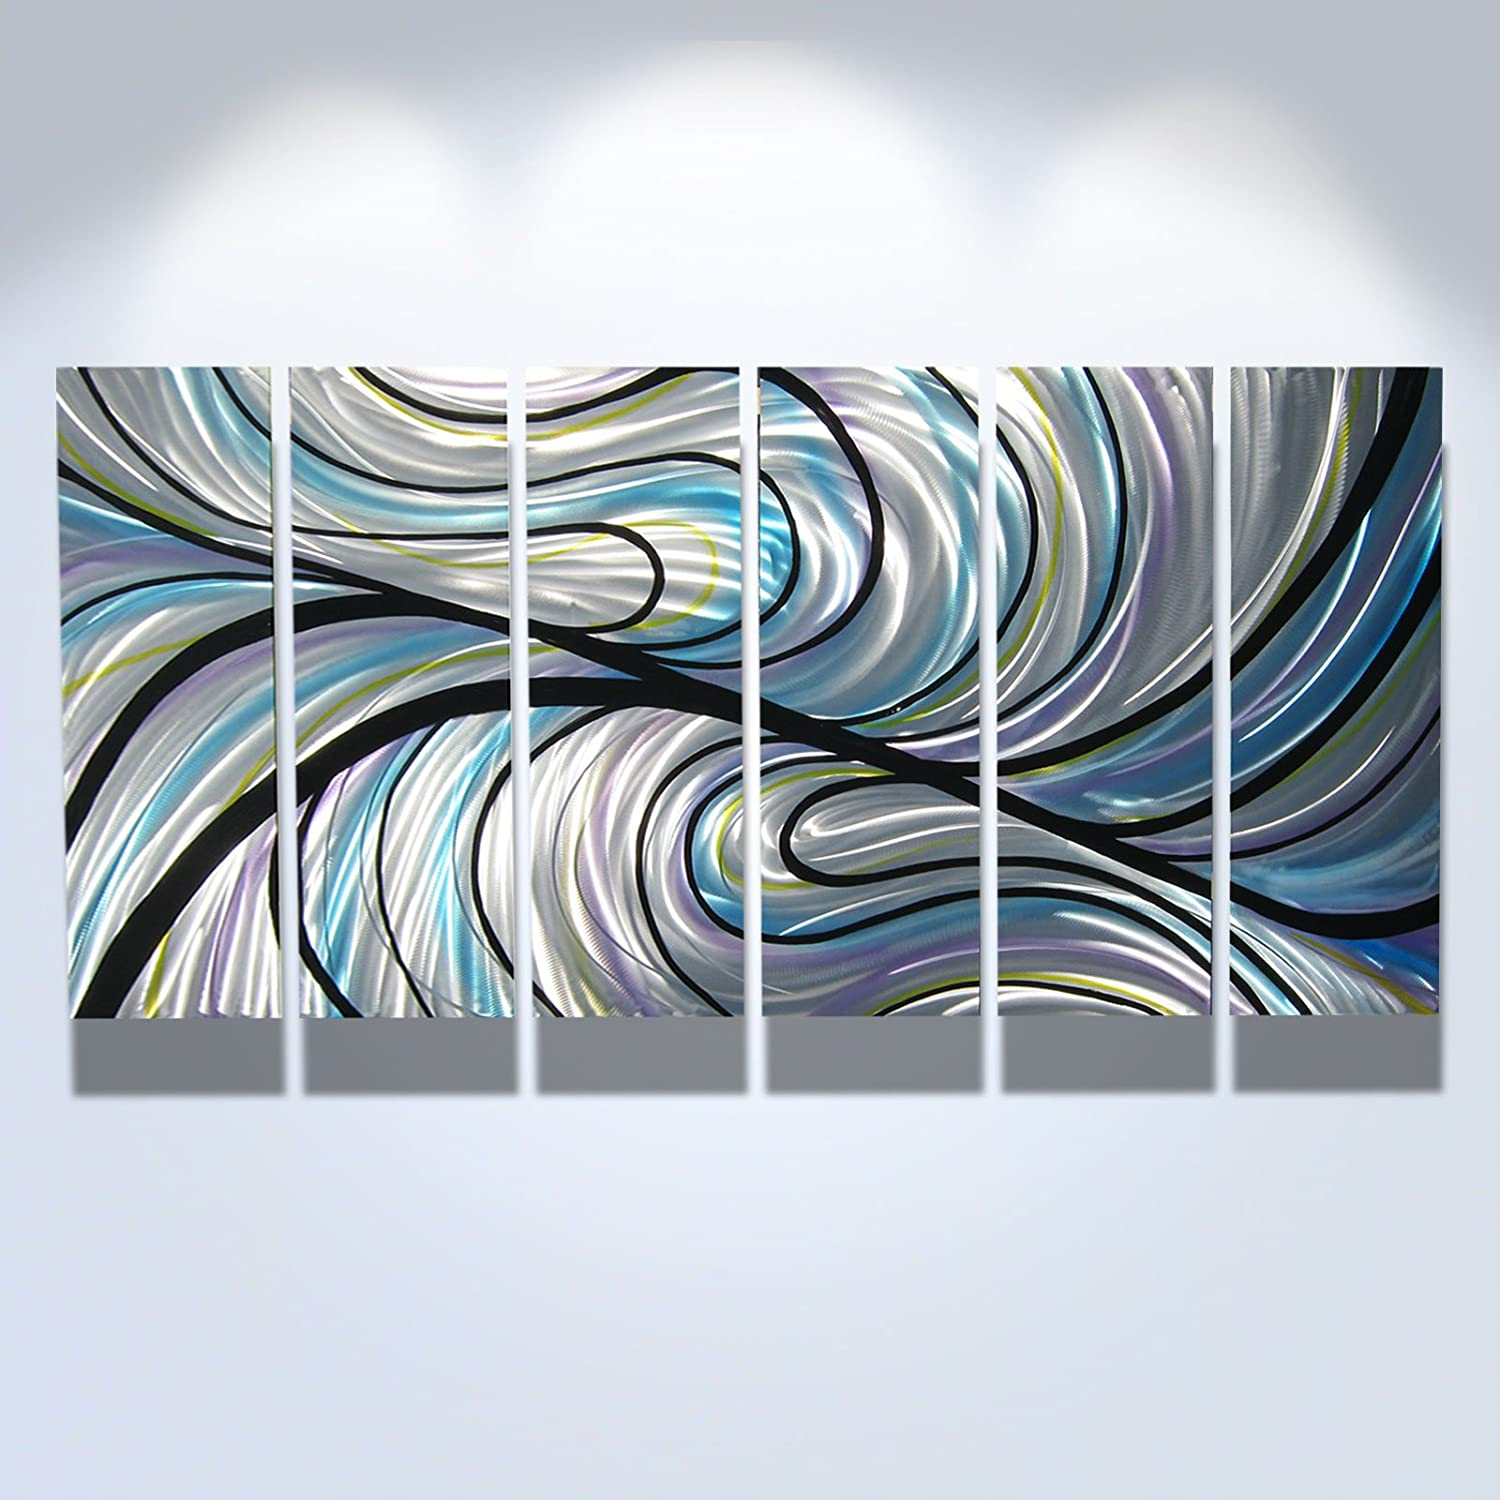 Amazon com metal wall art modern home decor abstract artwork sculpture convergence by miles shay home kitchen